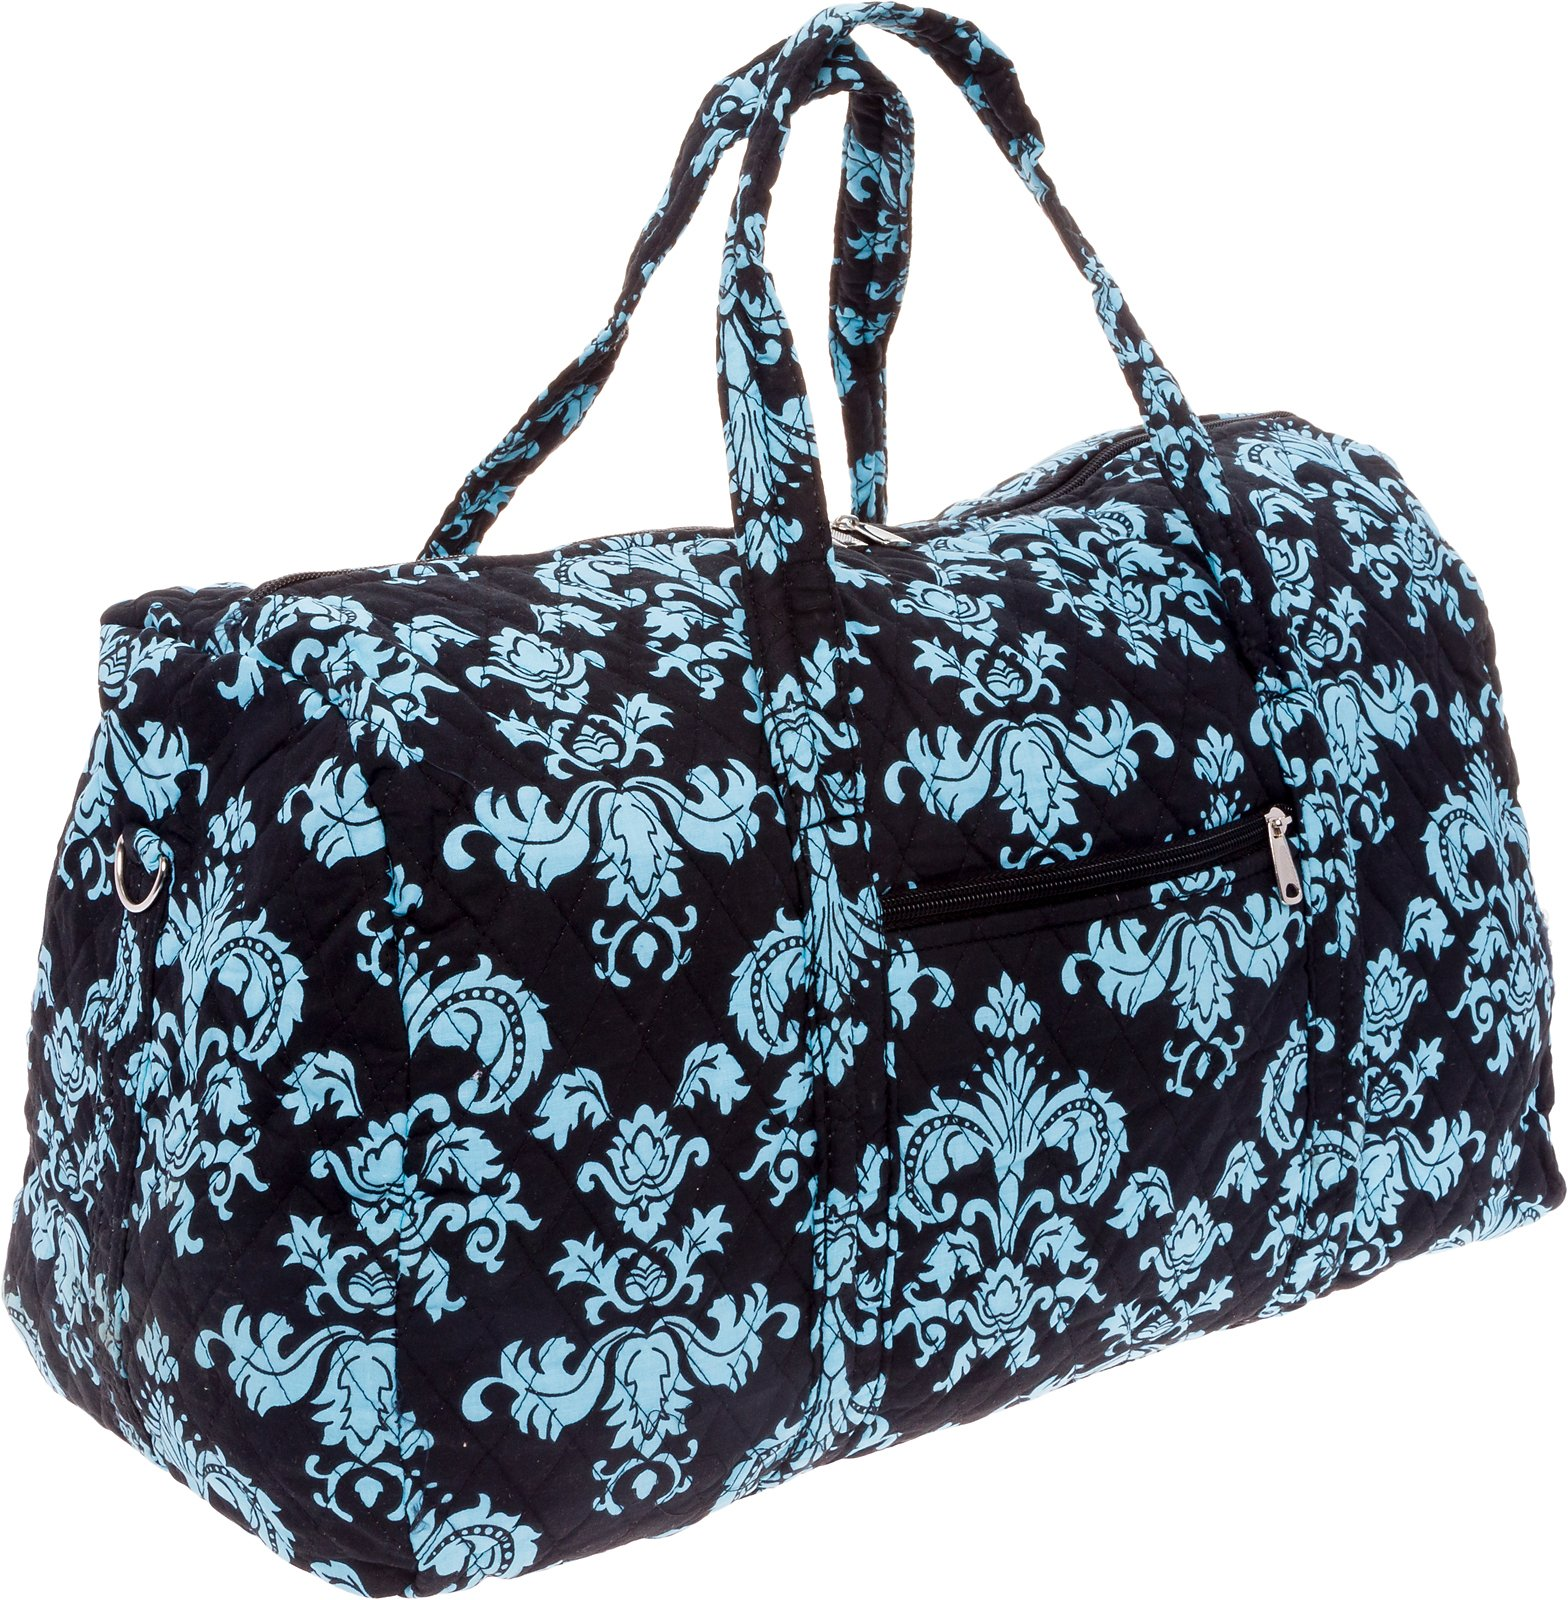 Silver Lilly Weekender Bag - Quilted Carry On Duffel Bag (Black & Blue Damask) by Silver Lilly